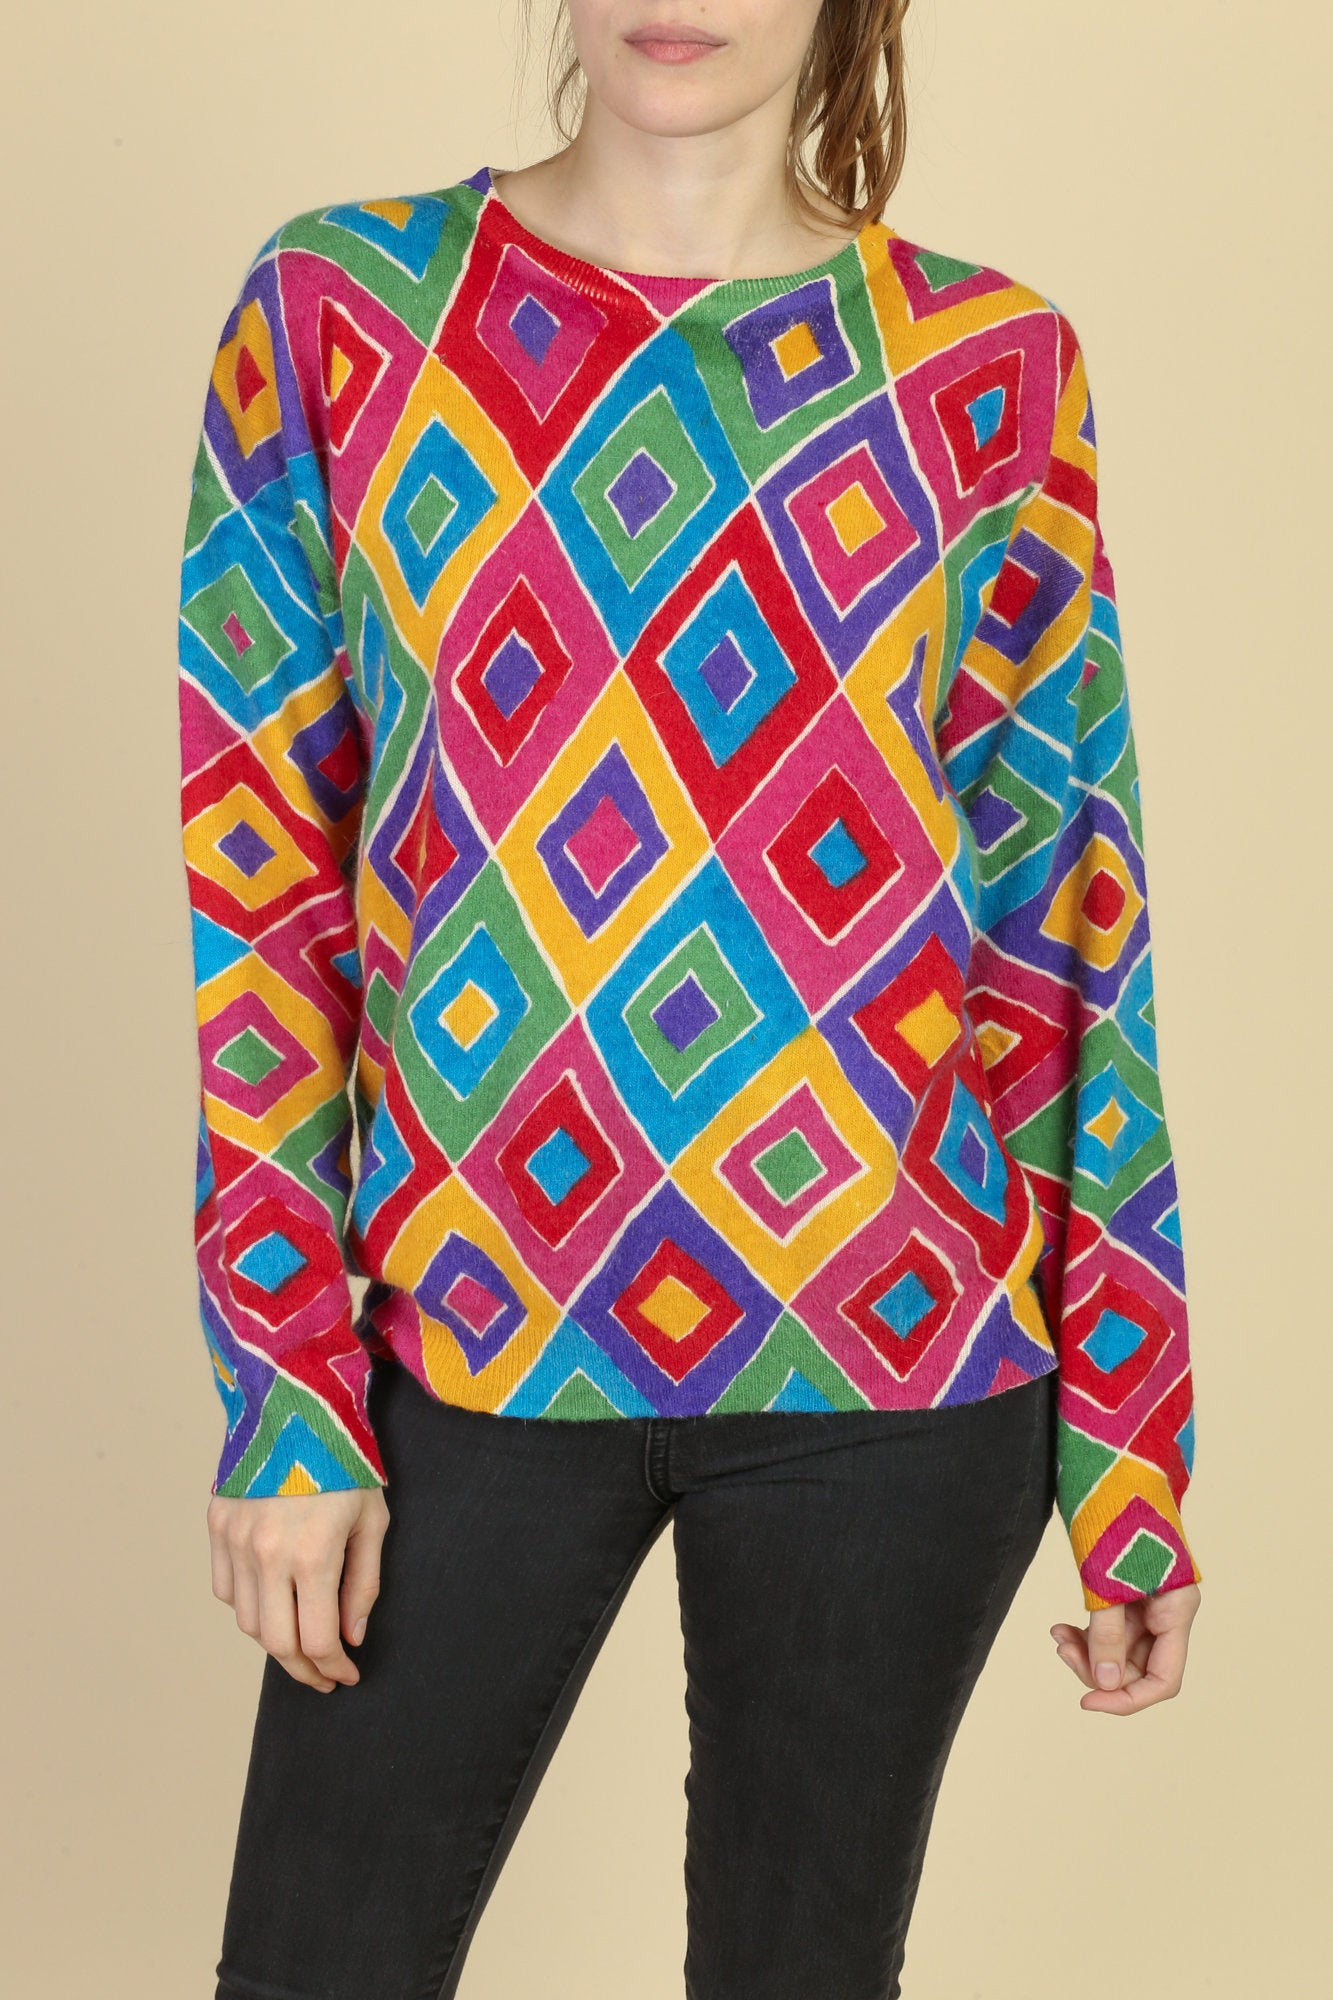 80s Colorful Lambswool Sweater - Large